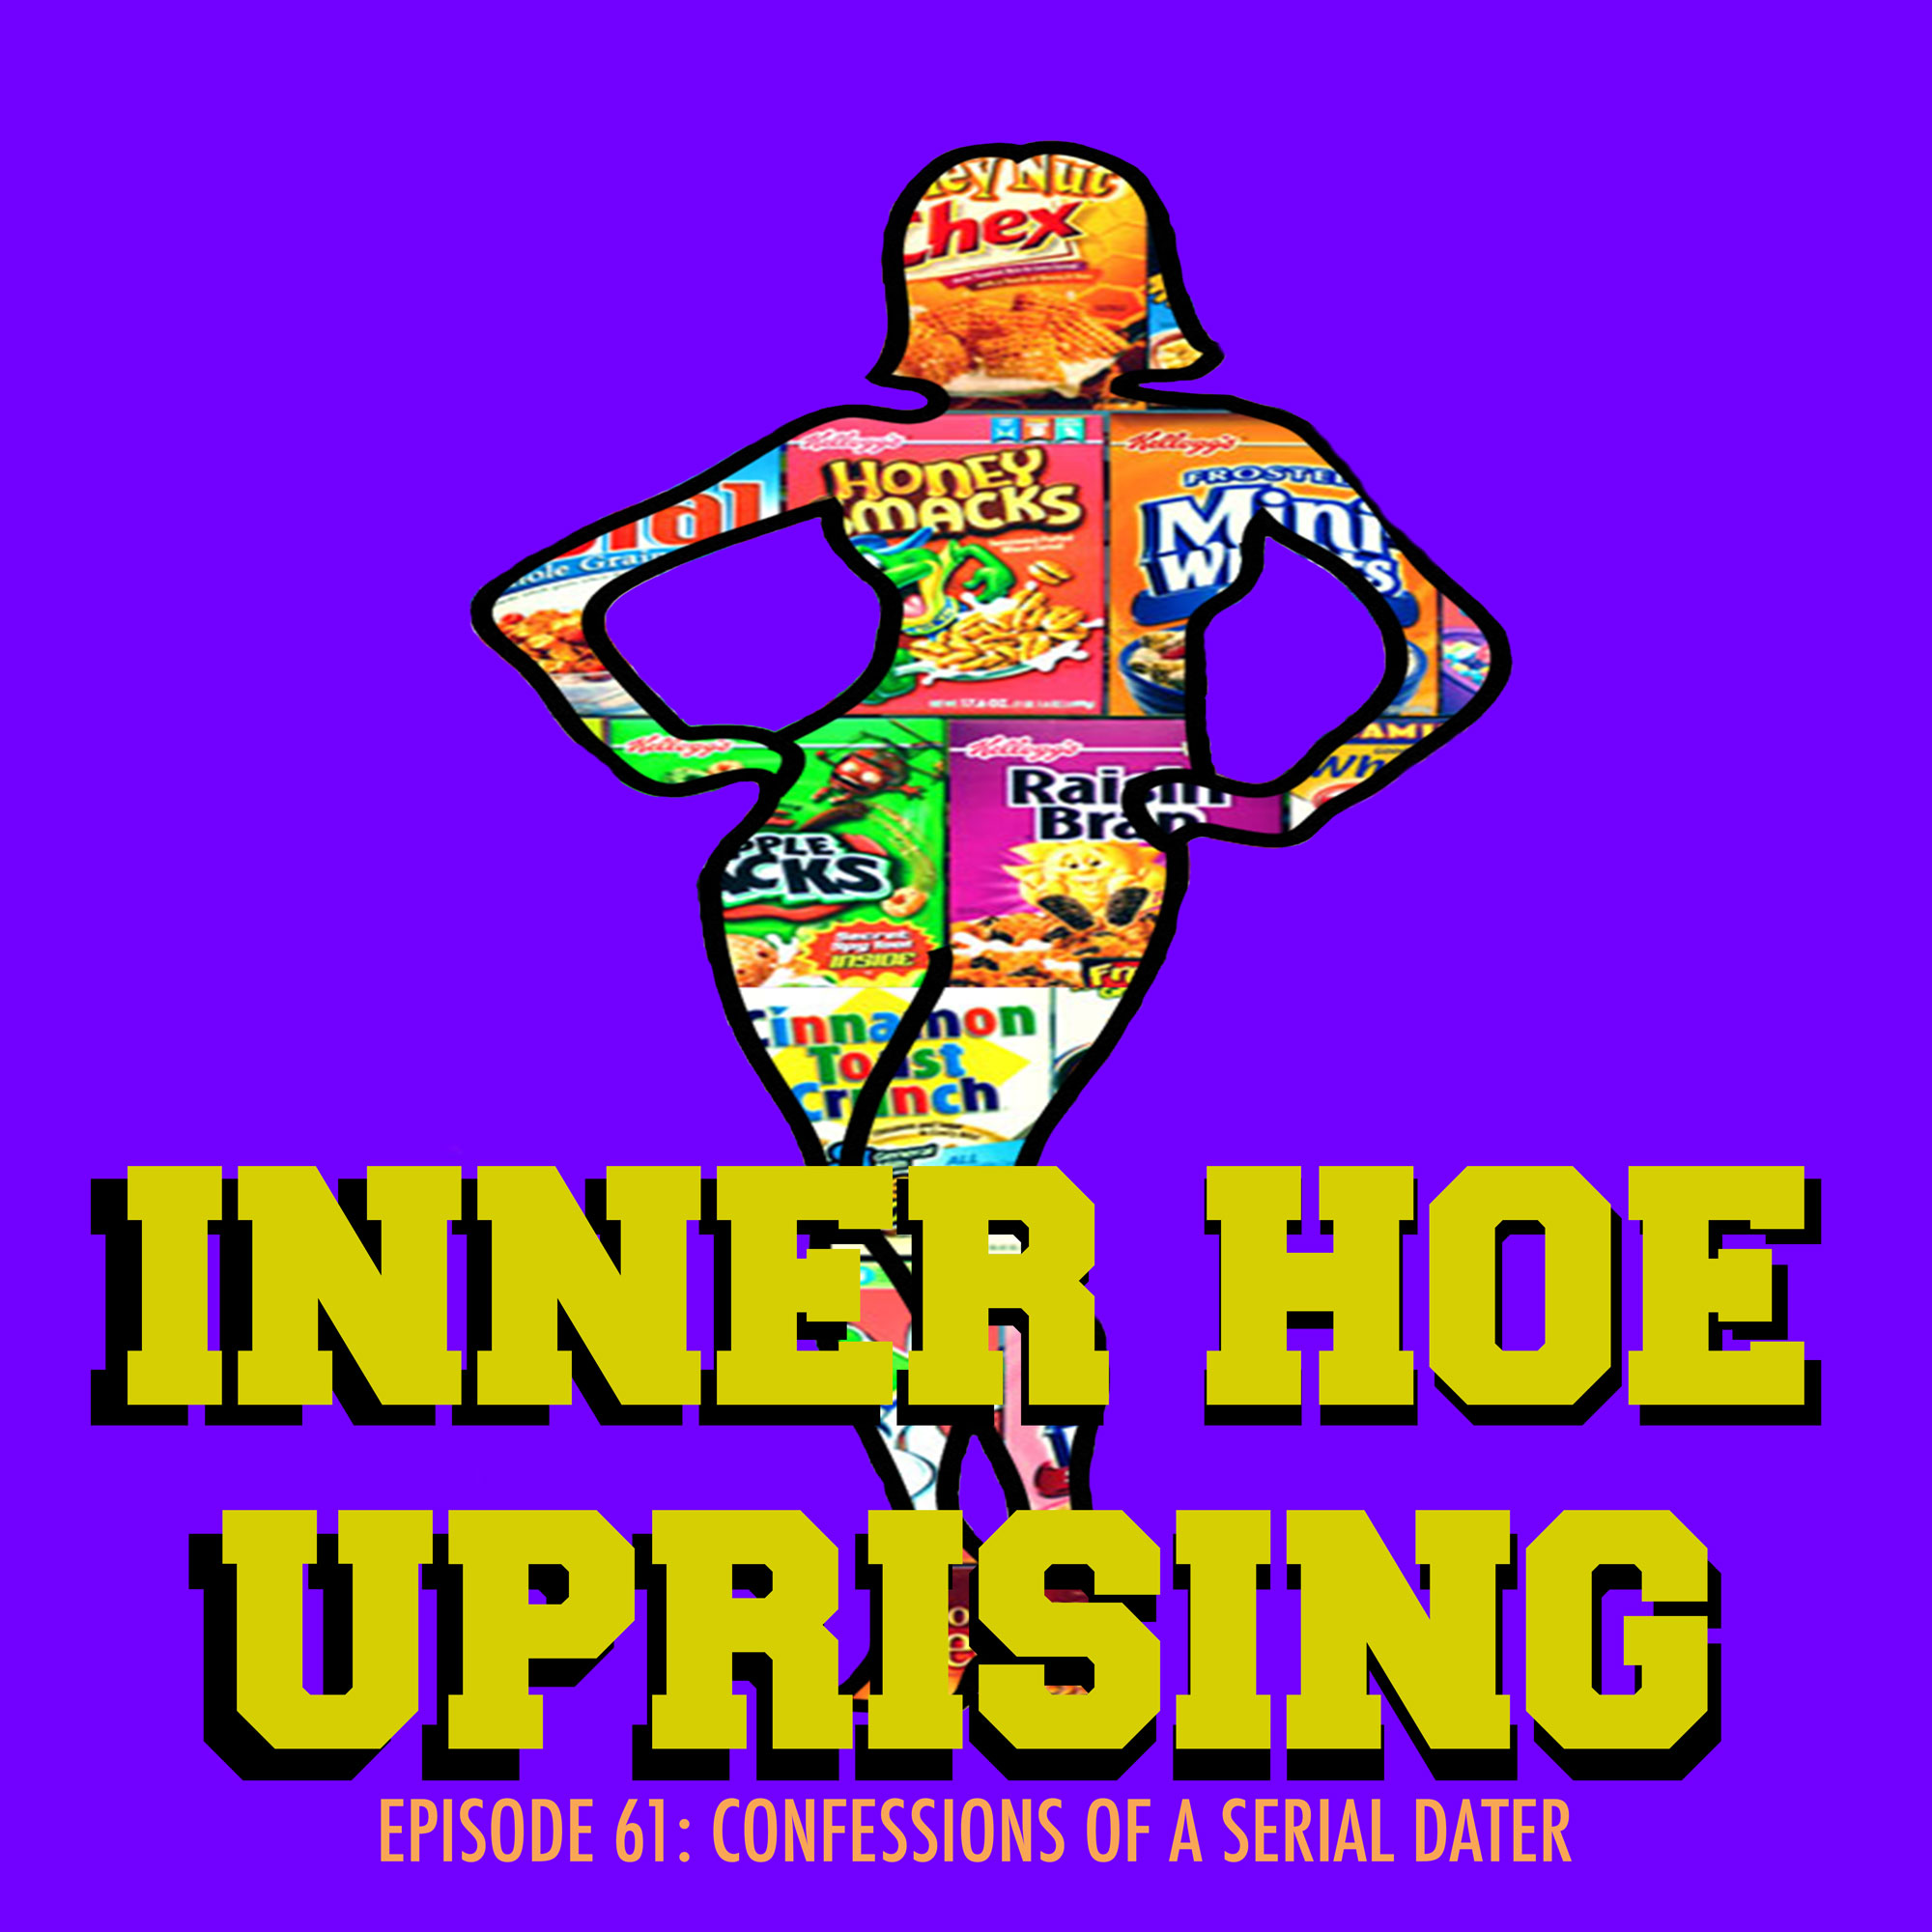 Inner Hoe Uprising, Serial Dating Cereal Dater